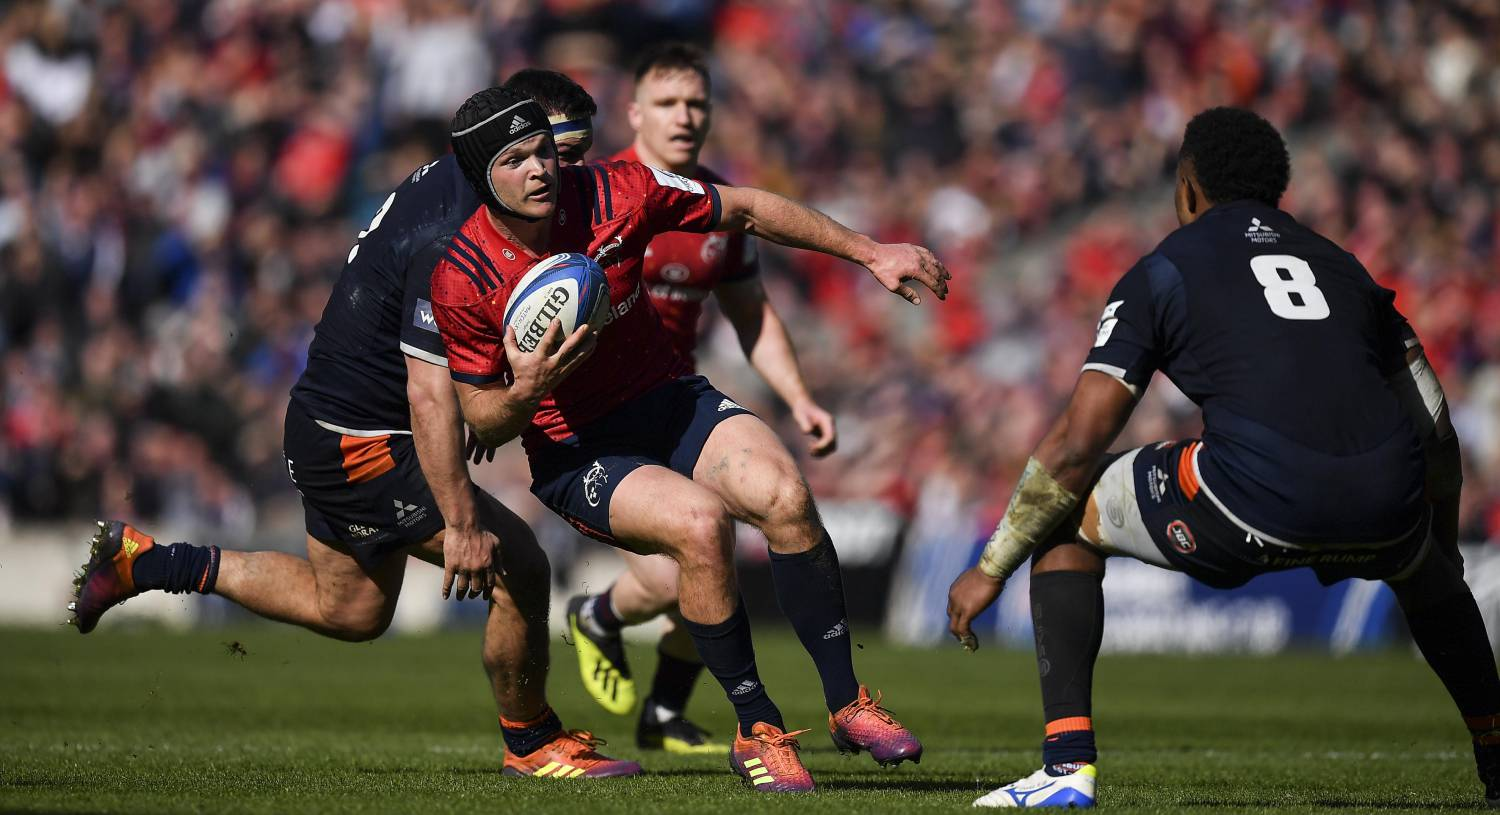 Tyler Bleyendaal in action against Stuart McInally and Bill Mata of Edinburgh during the Heineken Champions Cup Quarter-Final last year. Photo by Brendan Moran/Sportsfile